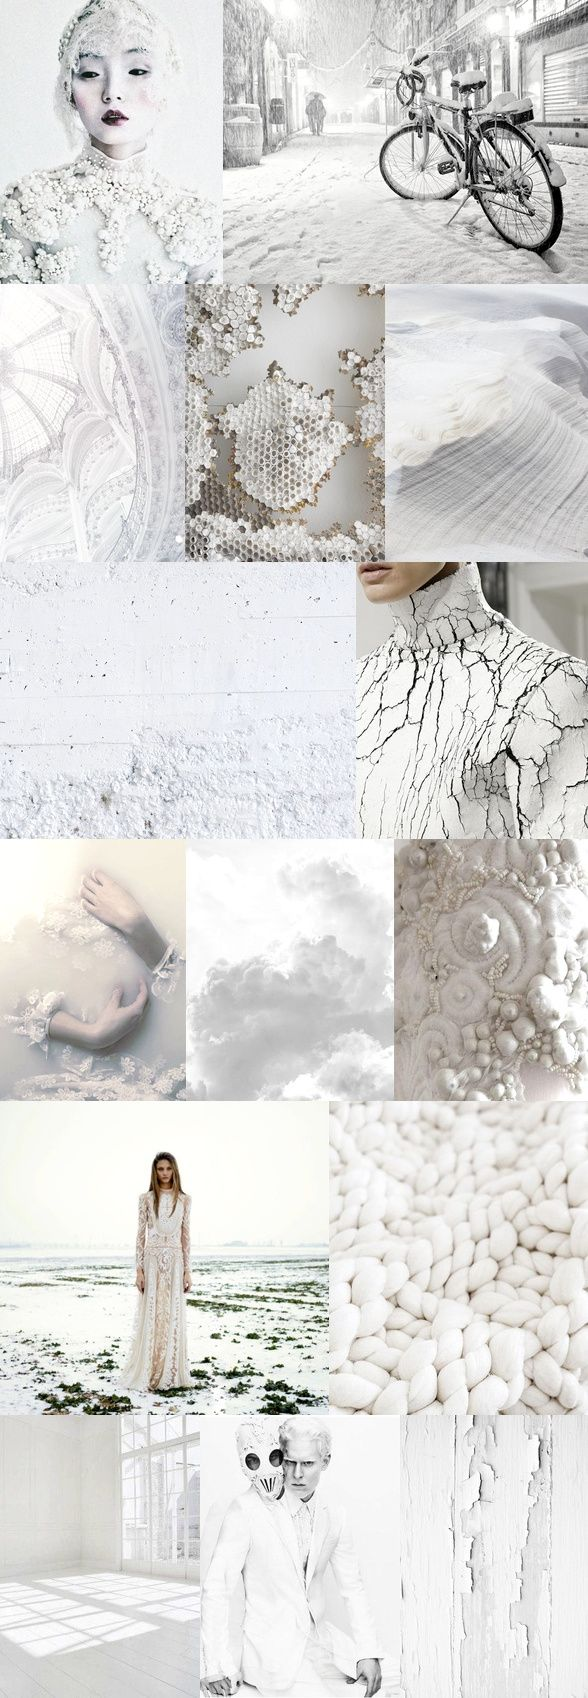 Mood Board #5 tendance de mode.com